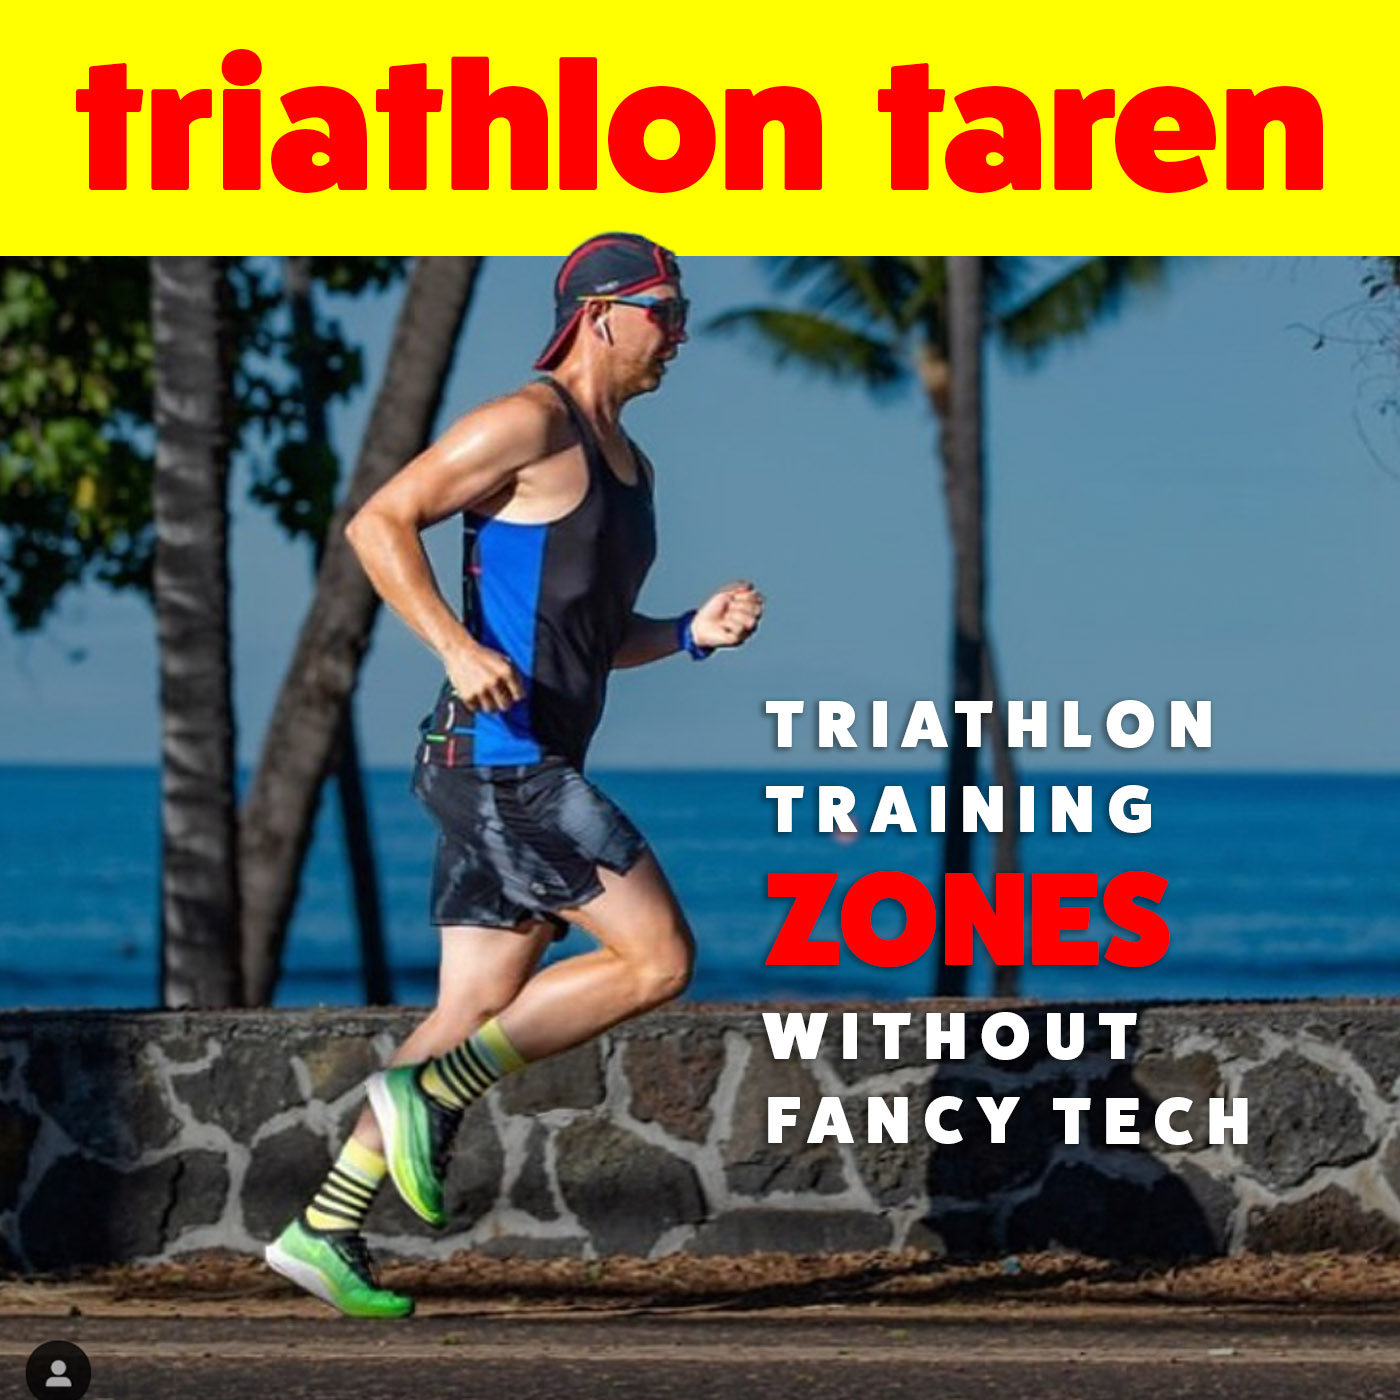 Triathlon Training Zones Without Fancy Tech